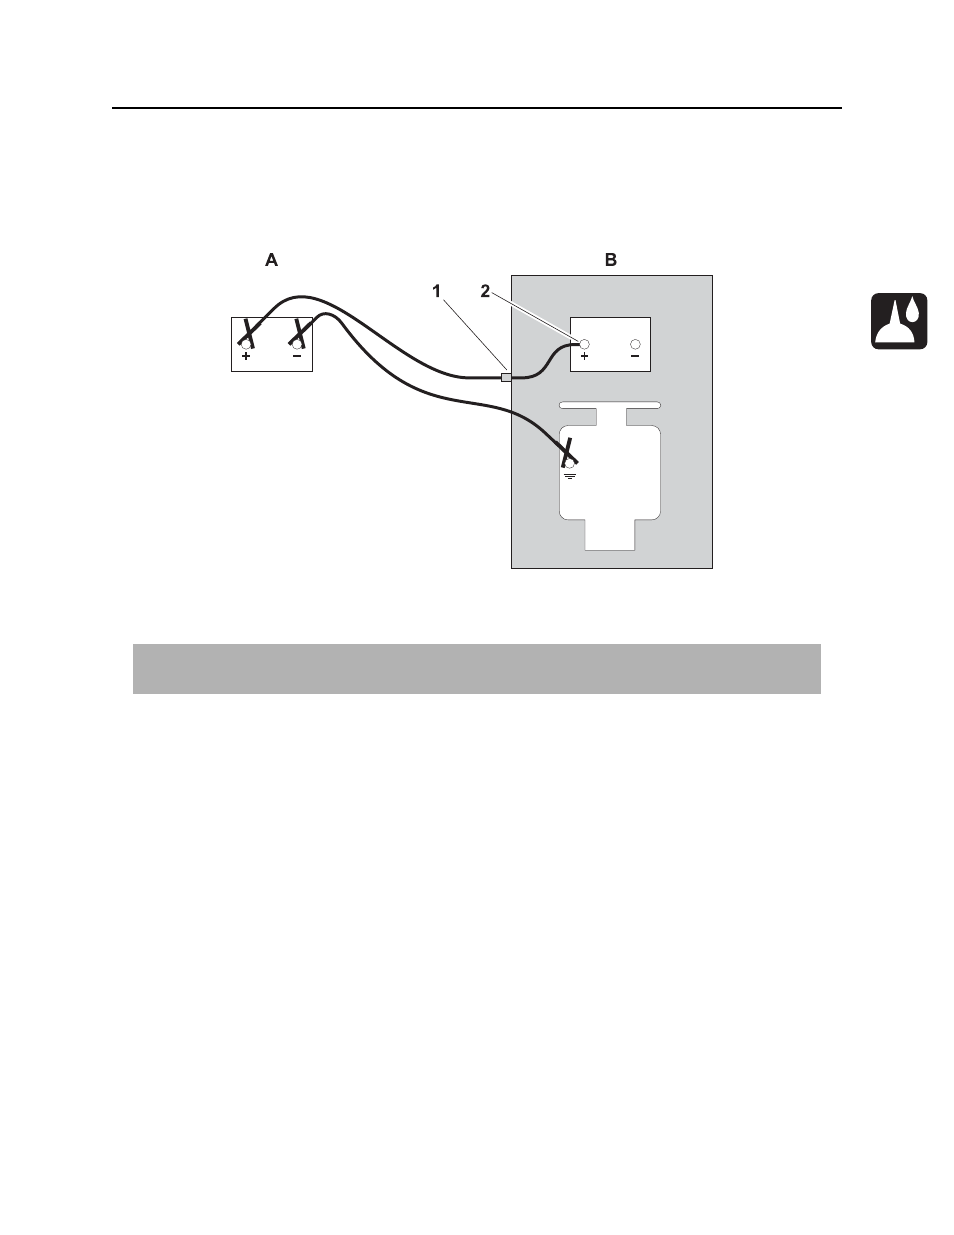 Rt45 operator's manual | Ditch Witch RT45 User Manual | Page 170 / on new holland wiring diagram, sakai wiring diagram, lowe wiring diagram, sullair wiring diagram, perkins wiring diagram, lull wiring diagram, clark wiring diagram, van hool wiring diagram, astec wiring diagram, case wiring diagram, liebherr wiring diagram, bomag wiring diagram, demag wiring diagram, american wiring diagram, john deere wiring diagram, 3500 wiring diagram, international wiring diagram, simplicity wiring diagram, ingersoll rand wiring diagram, western star wiring diagram,